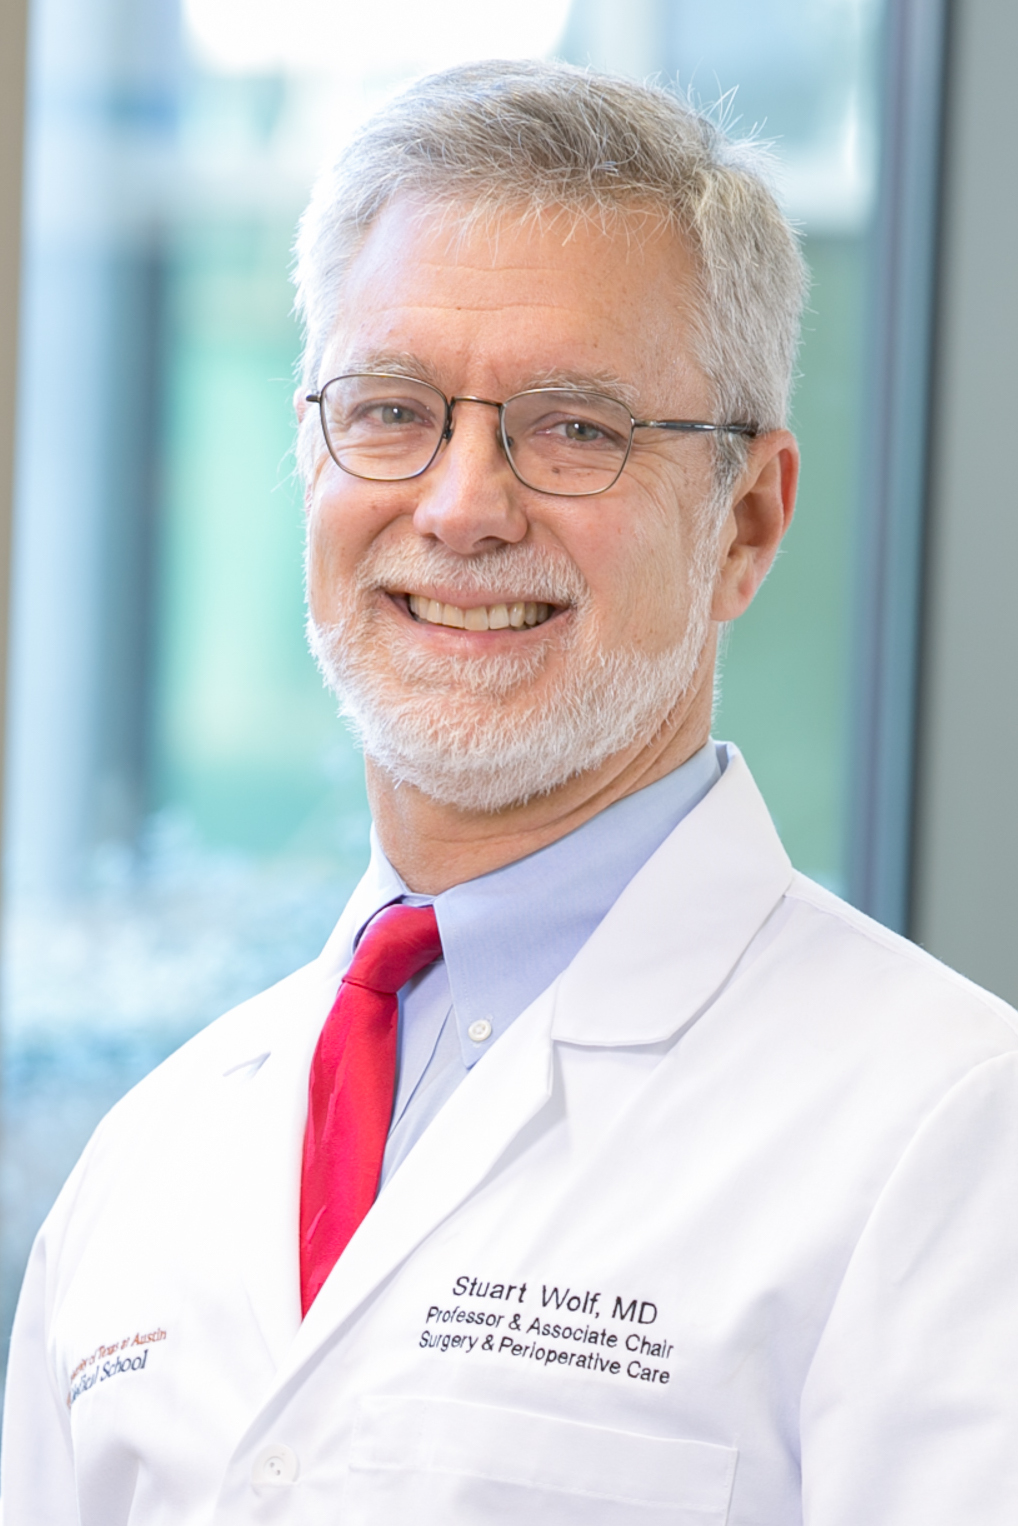 James Wolf, MD